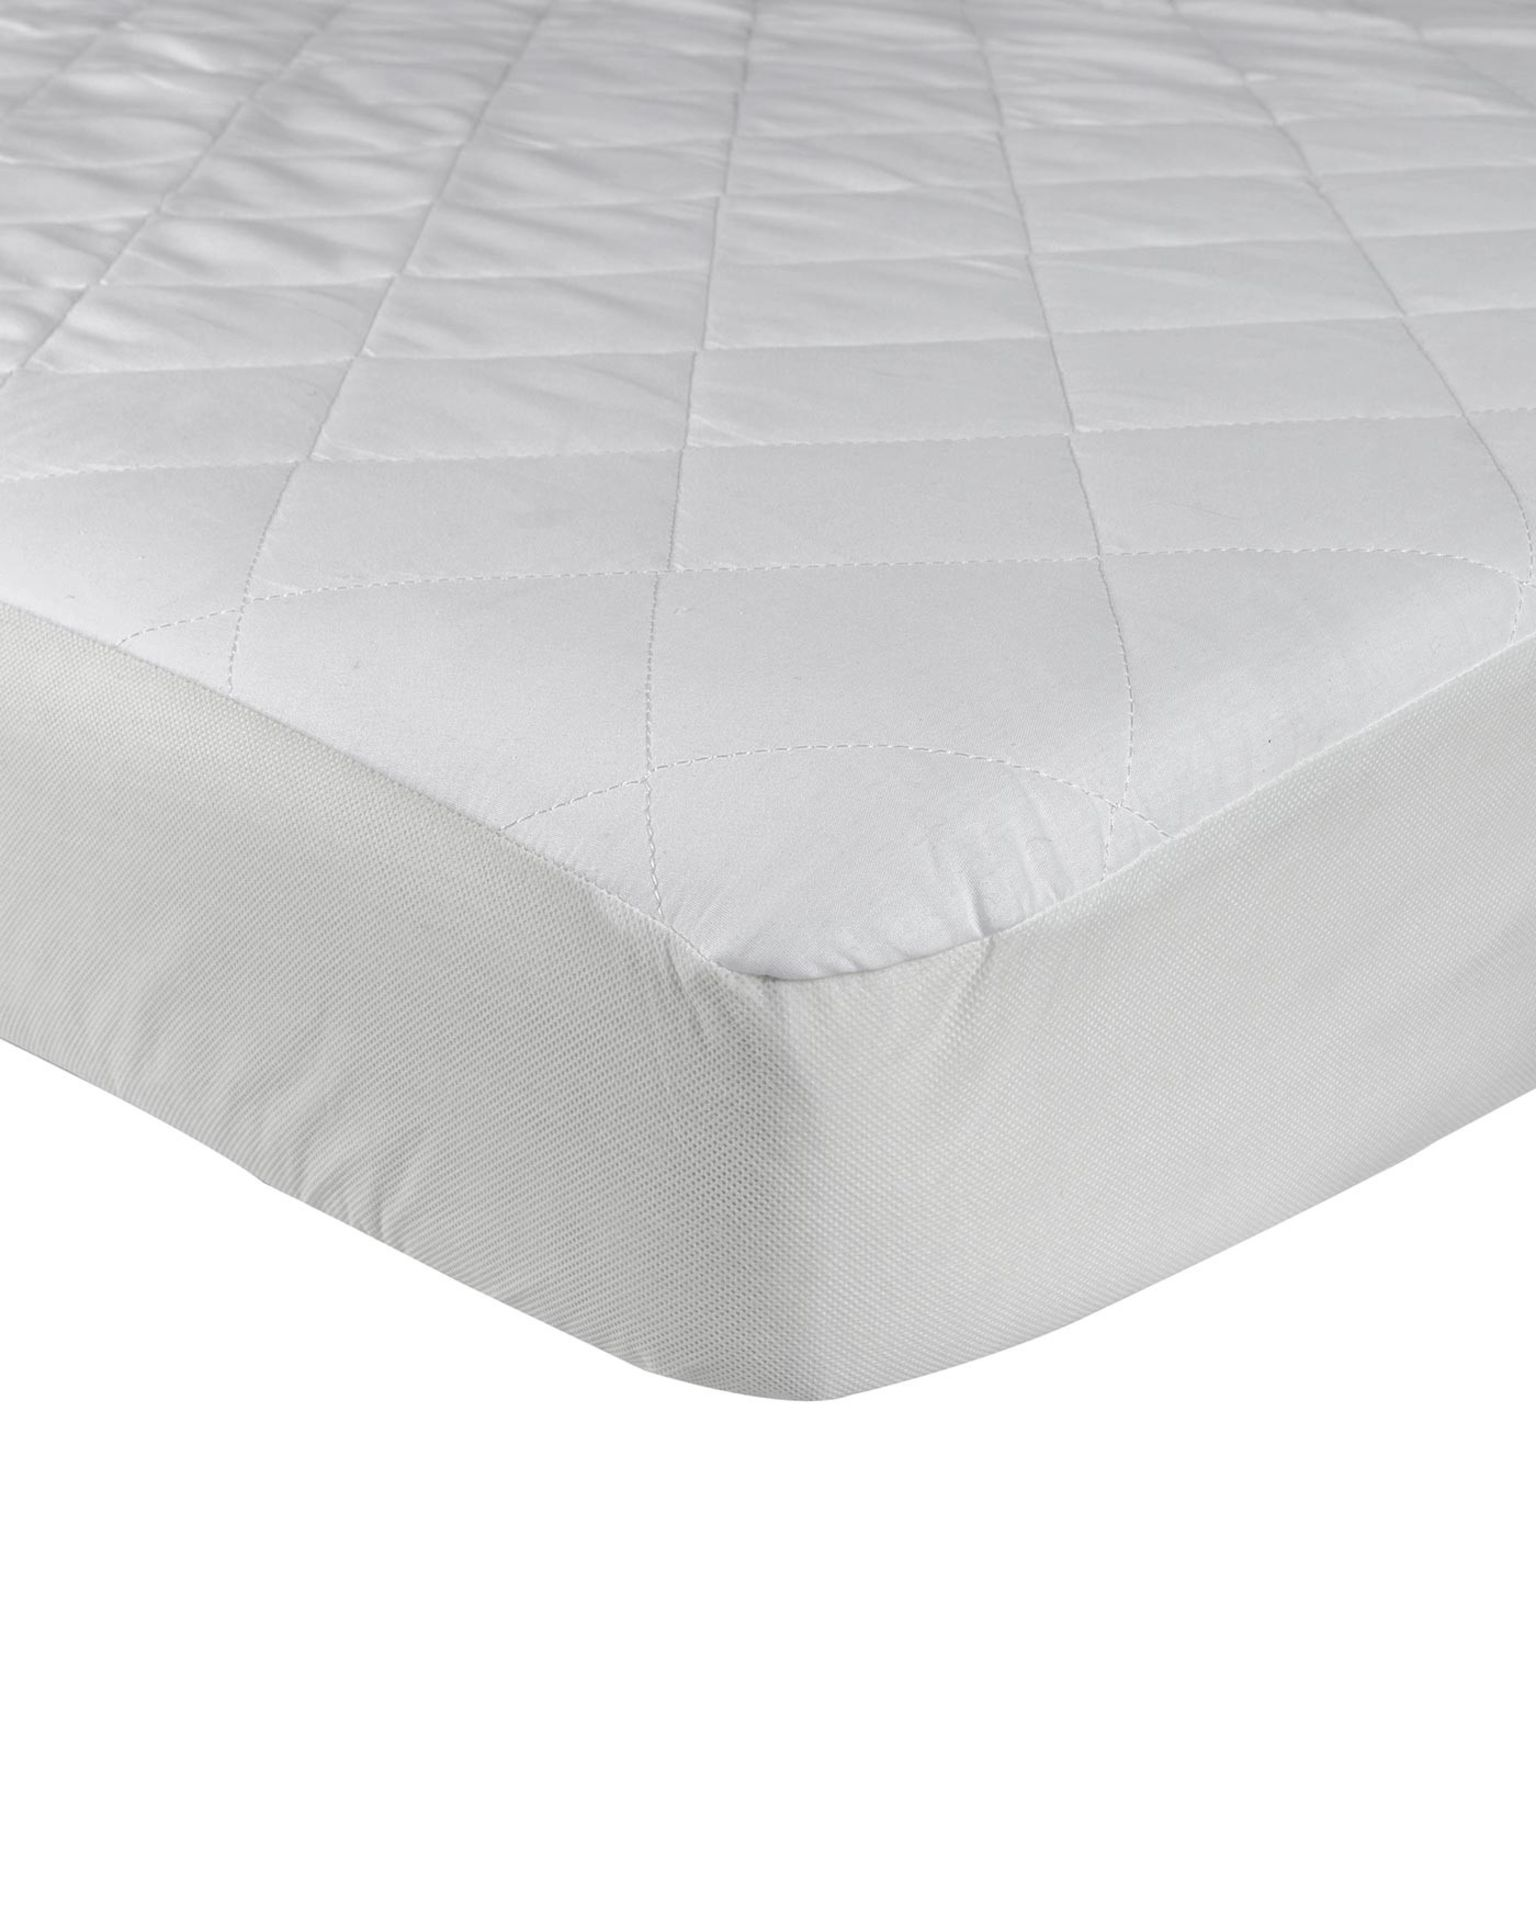 + VAT Brand New Extra Deep Luxury Quilted Fitted Double Bed Mattress Protector 33cm